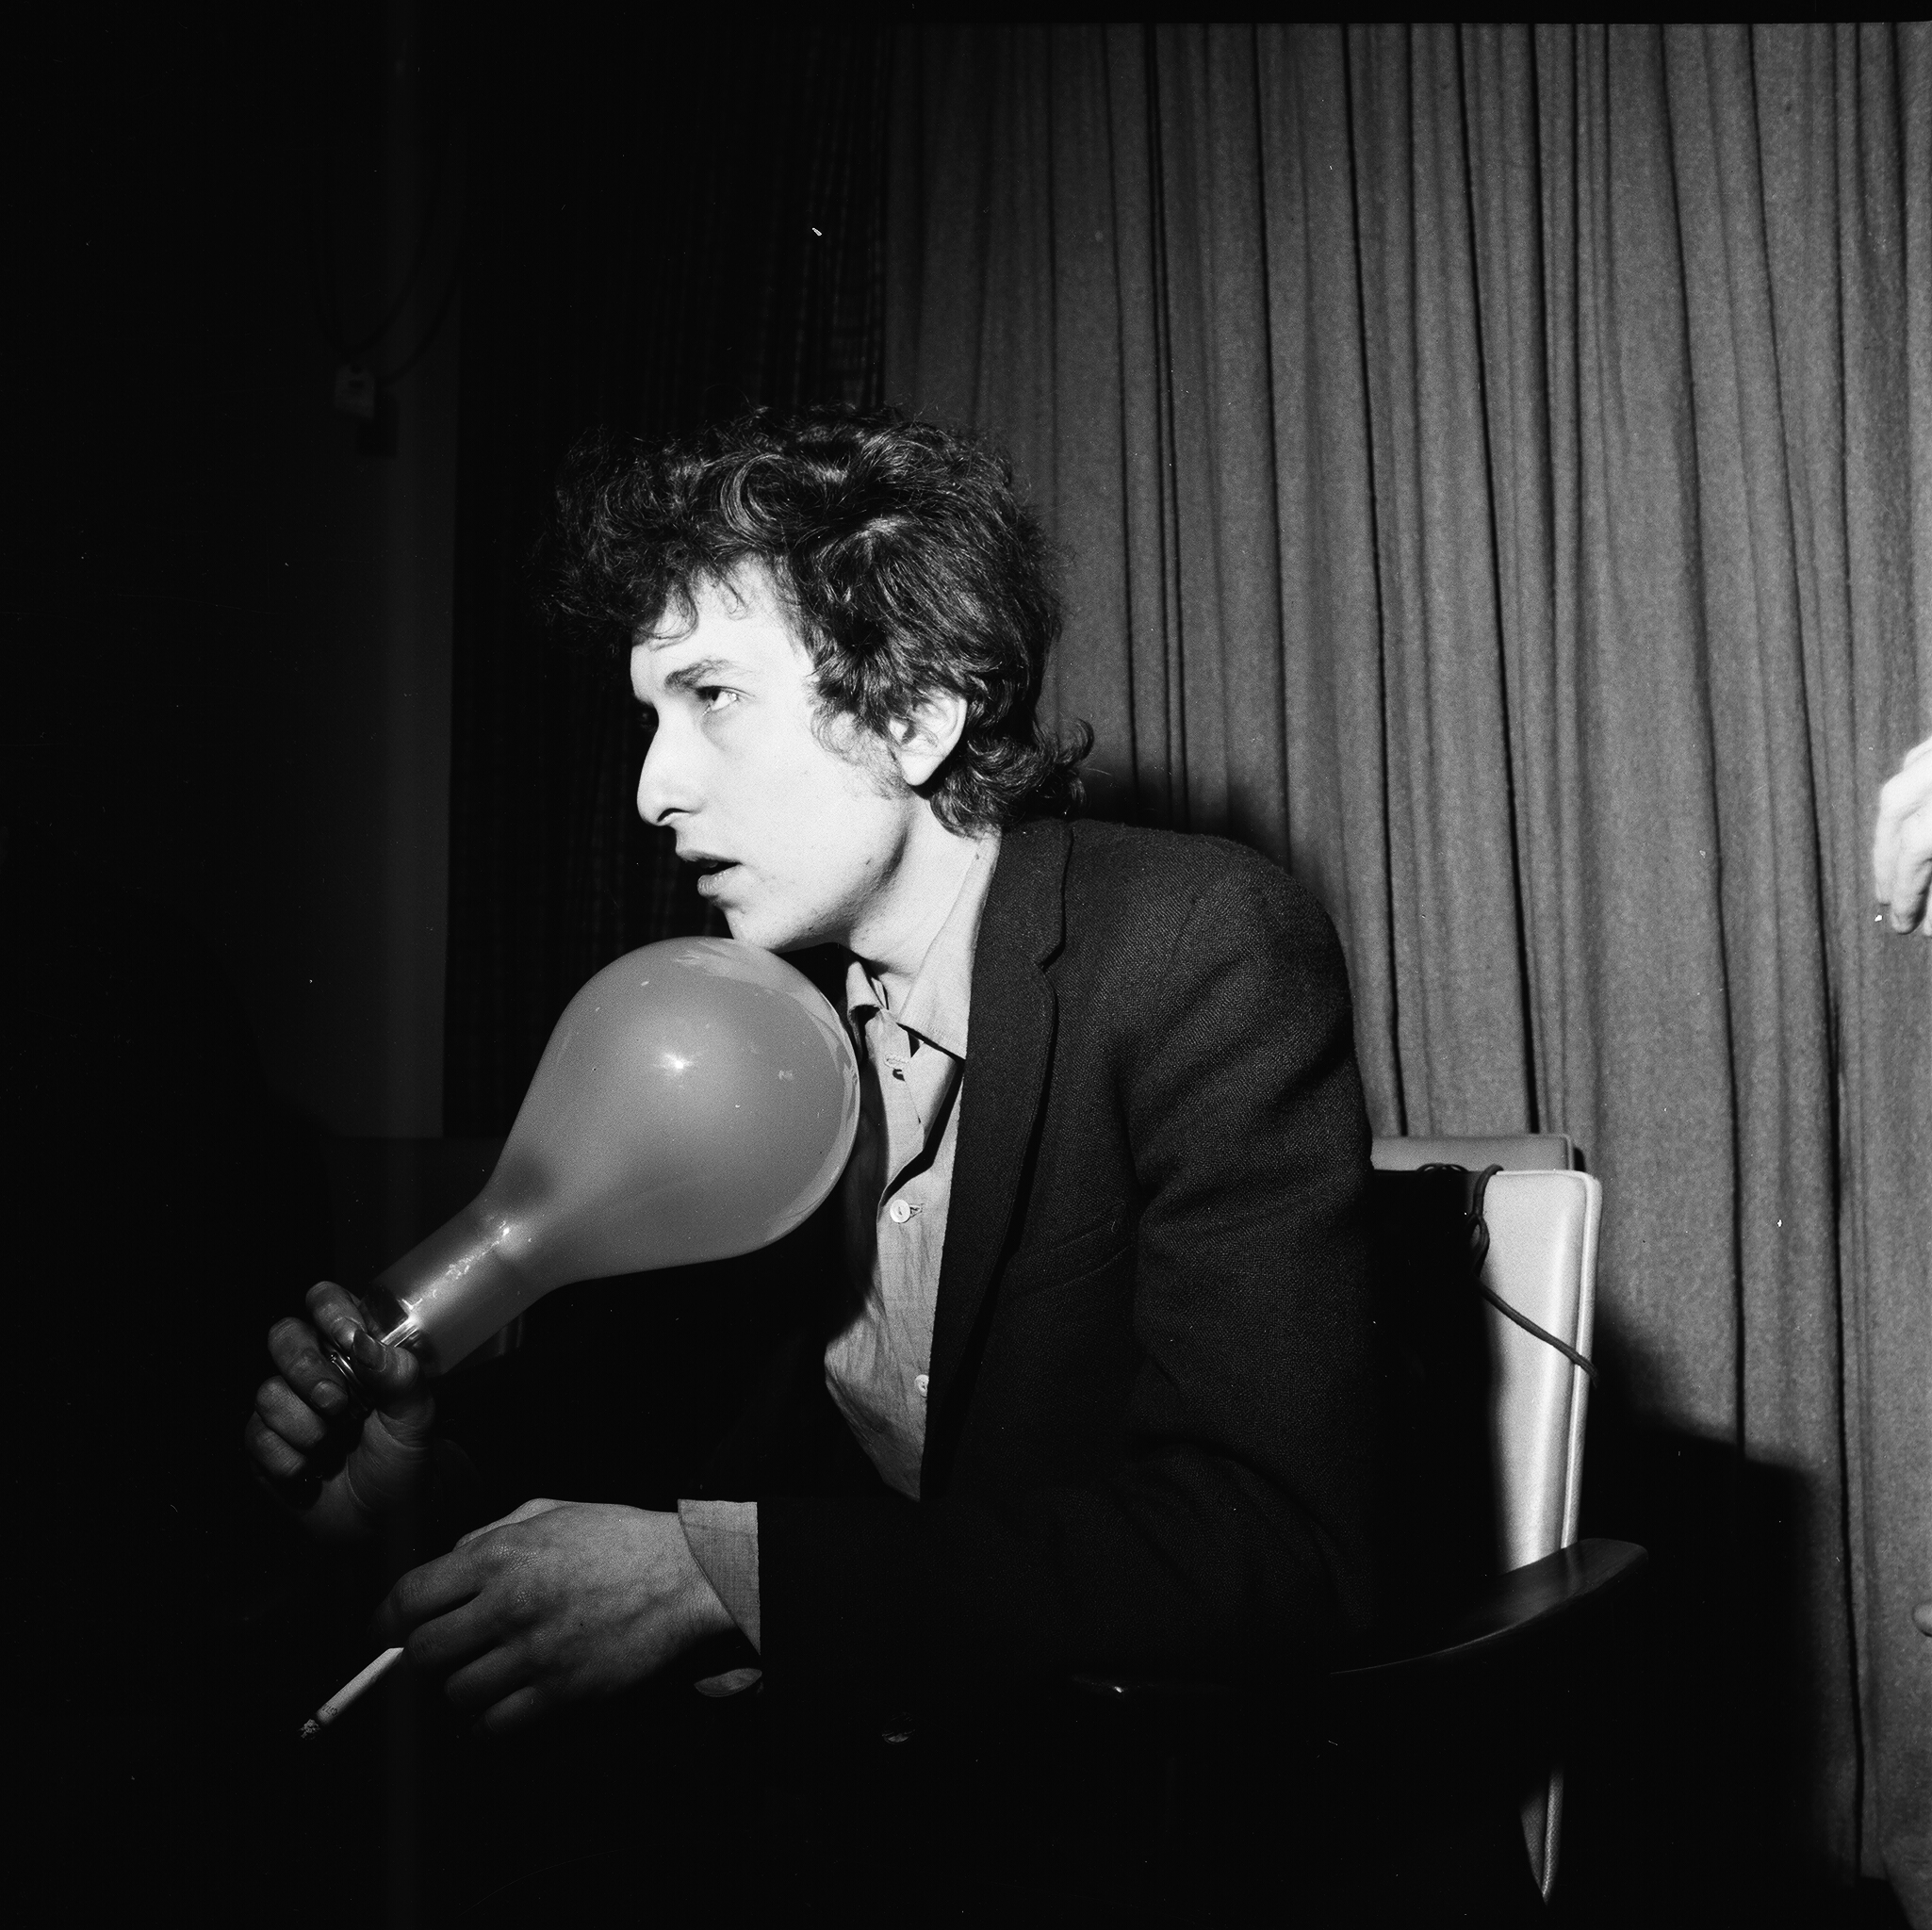 Bob Dylan holding a large light bulb at a press conference, London, 1965.